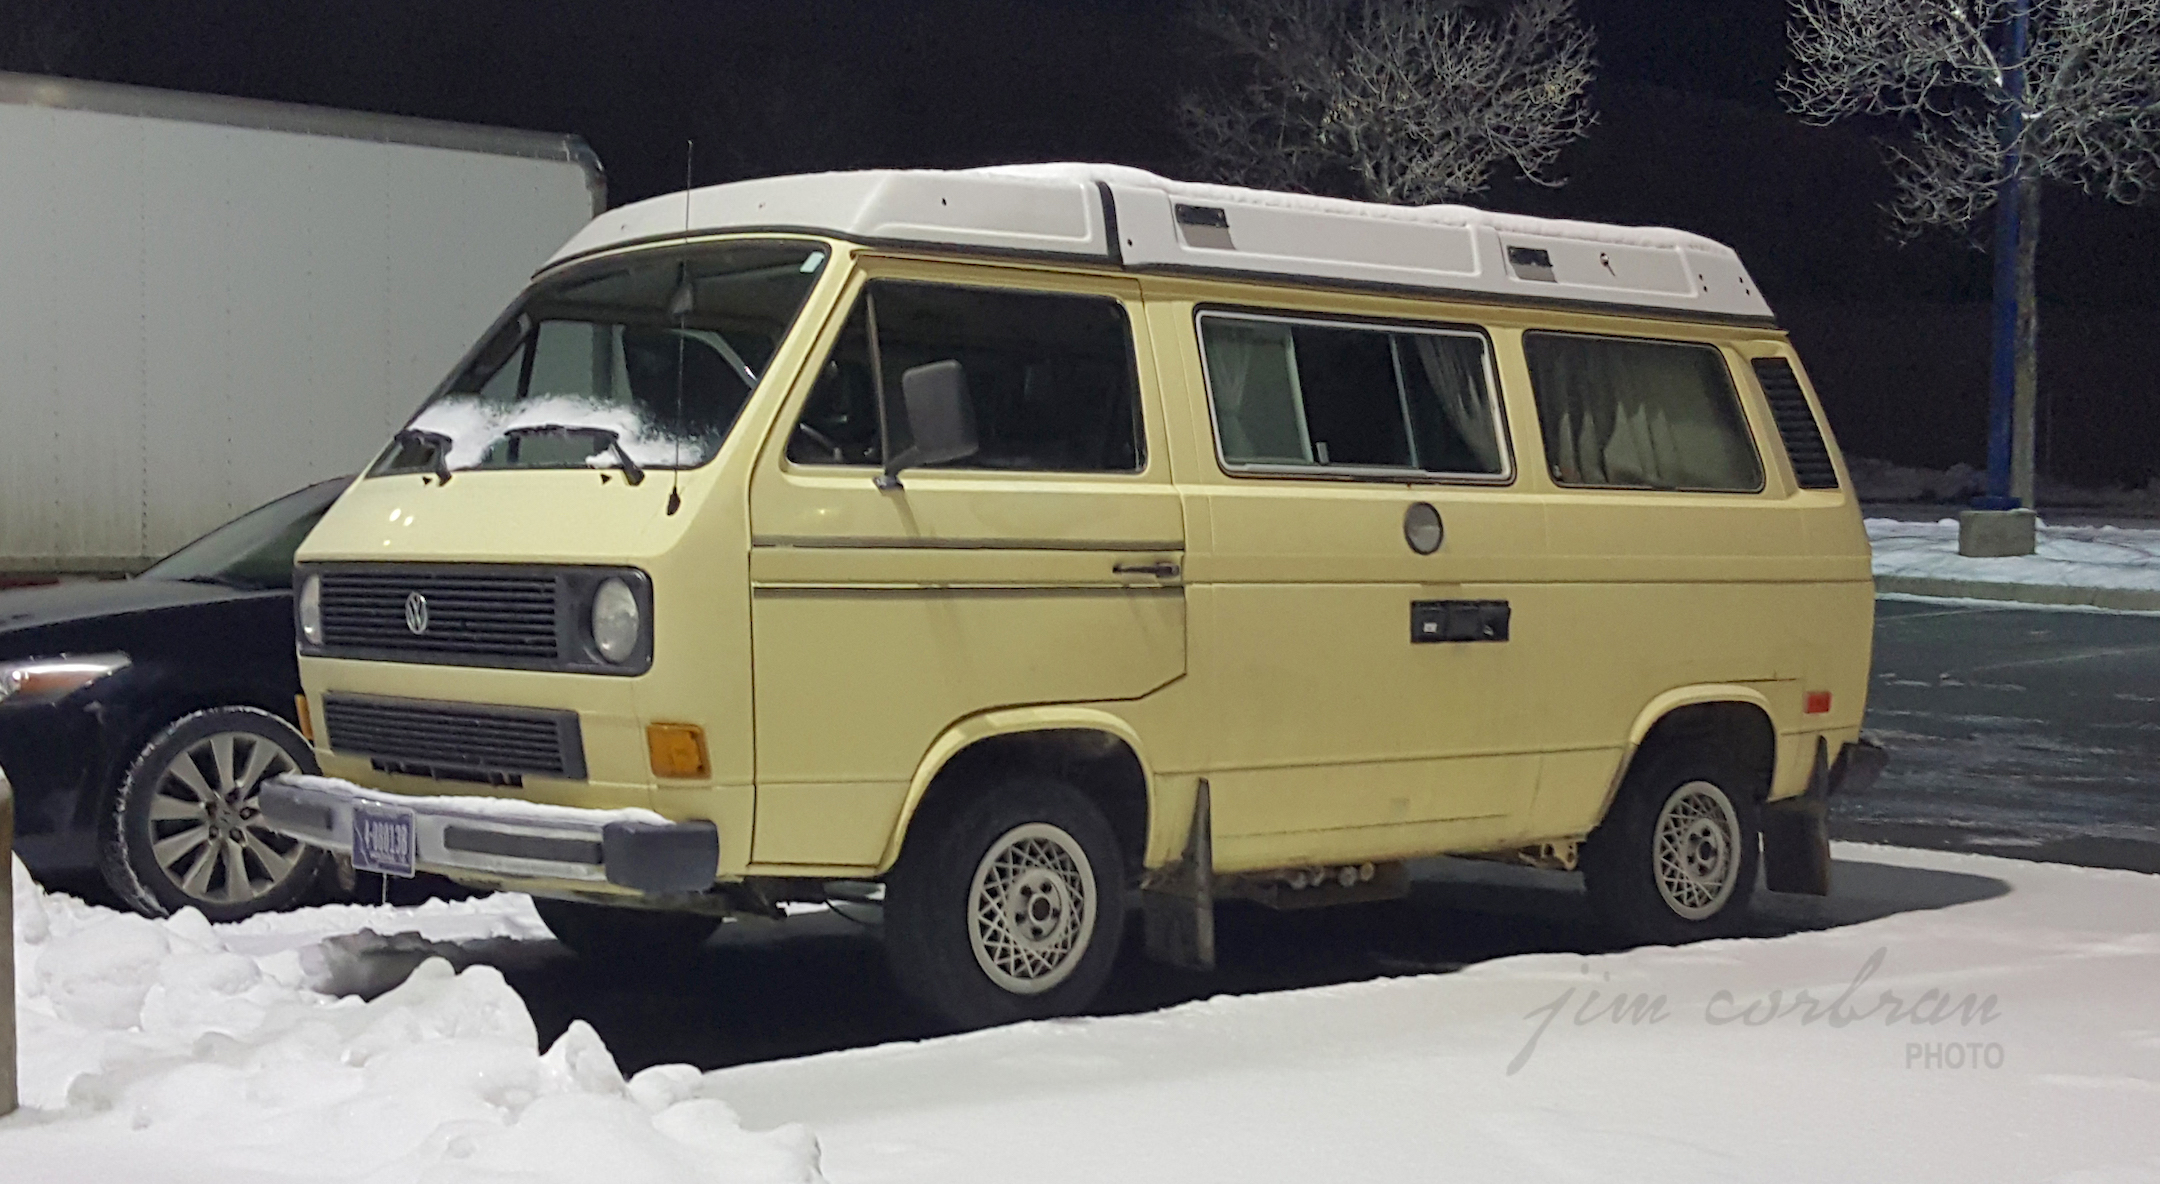 RealRides of WNY (on the road) - Volkswagen Vanagon